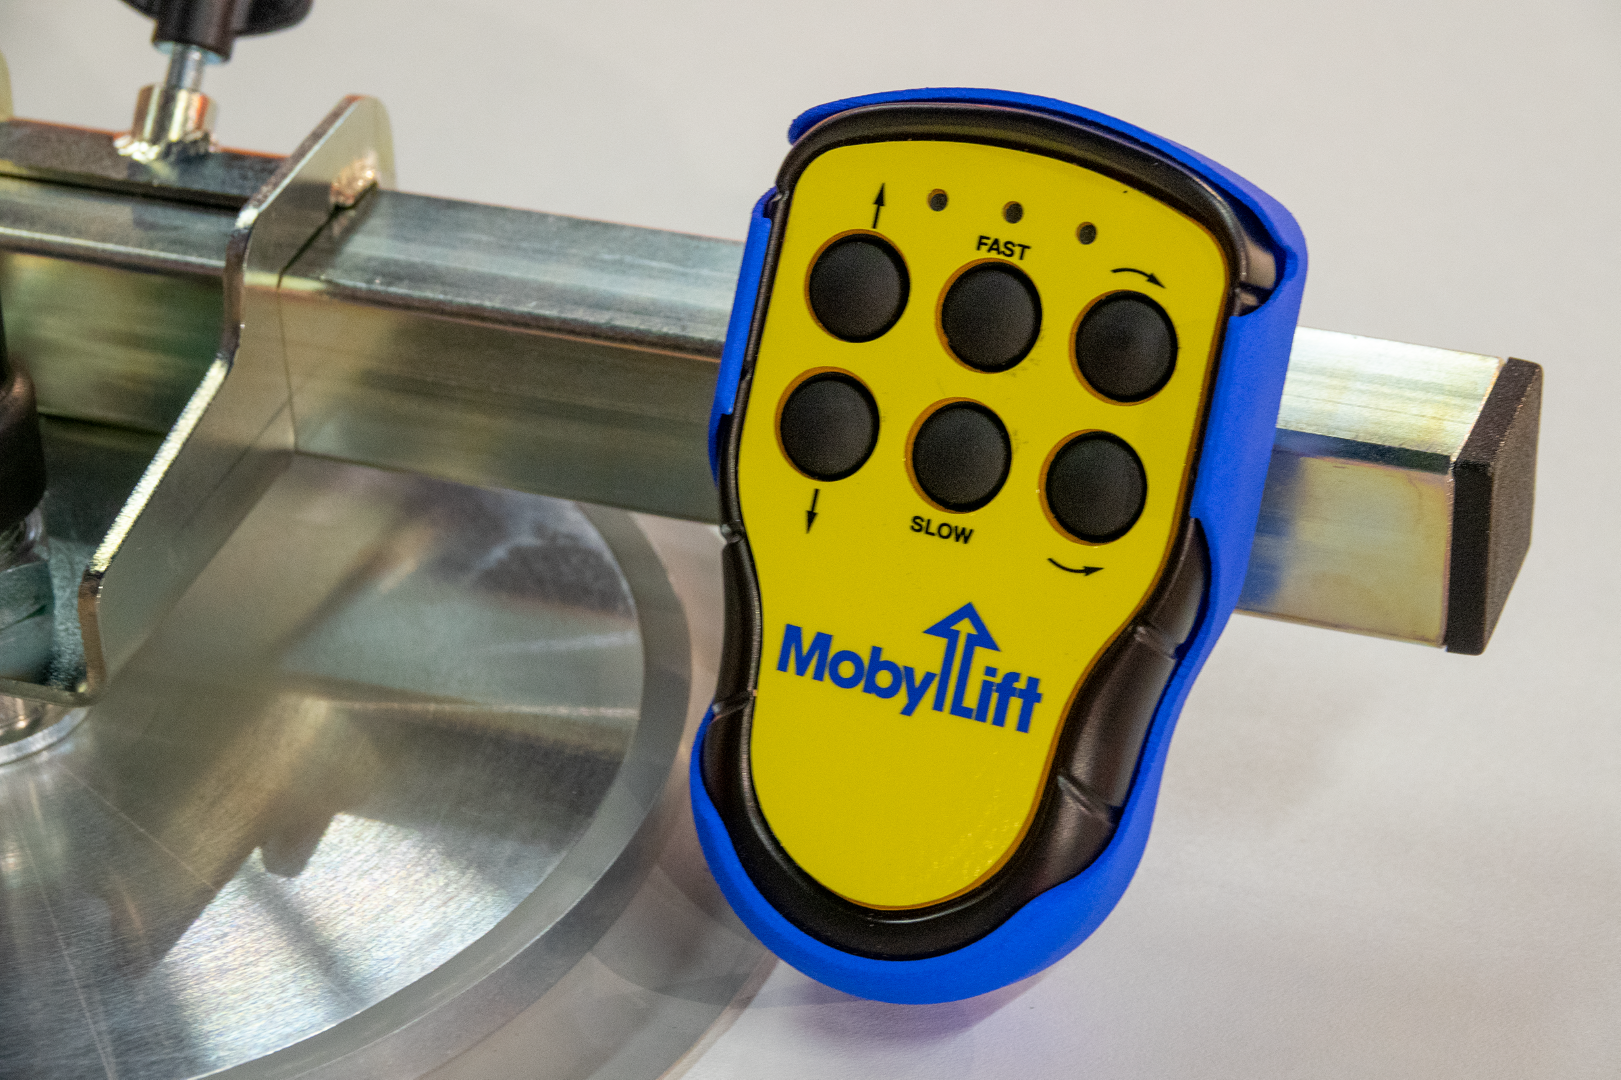 MobyLift TC-120 Vacuümheffer